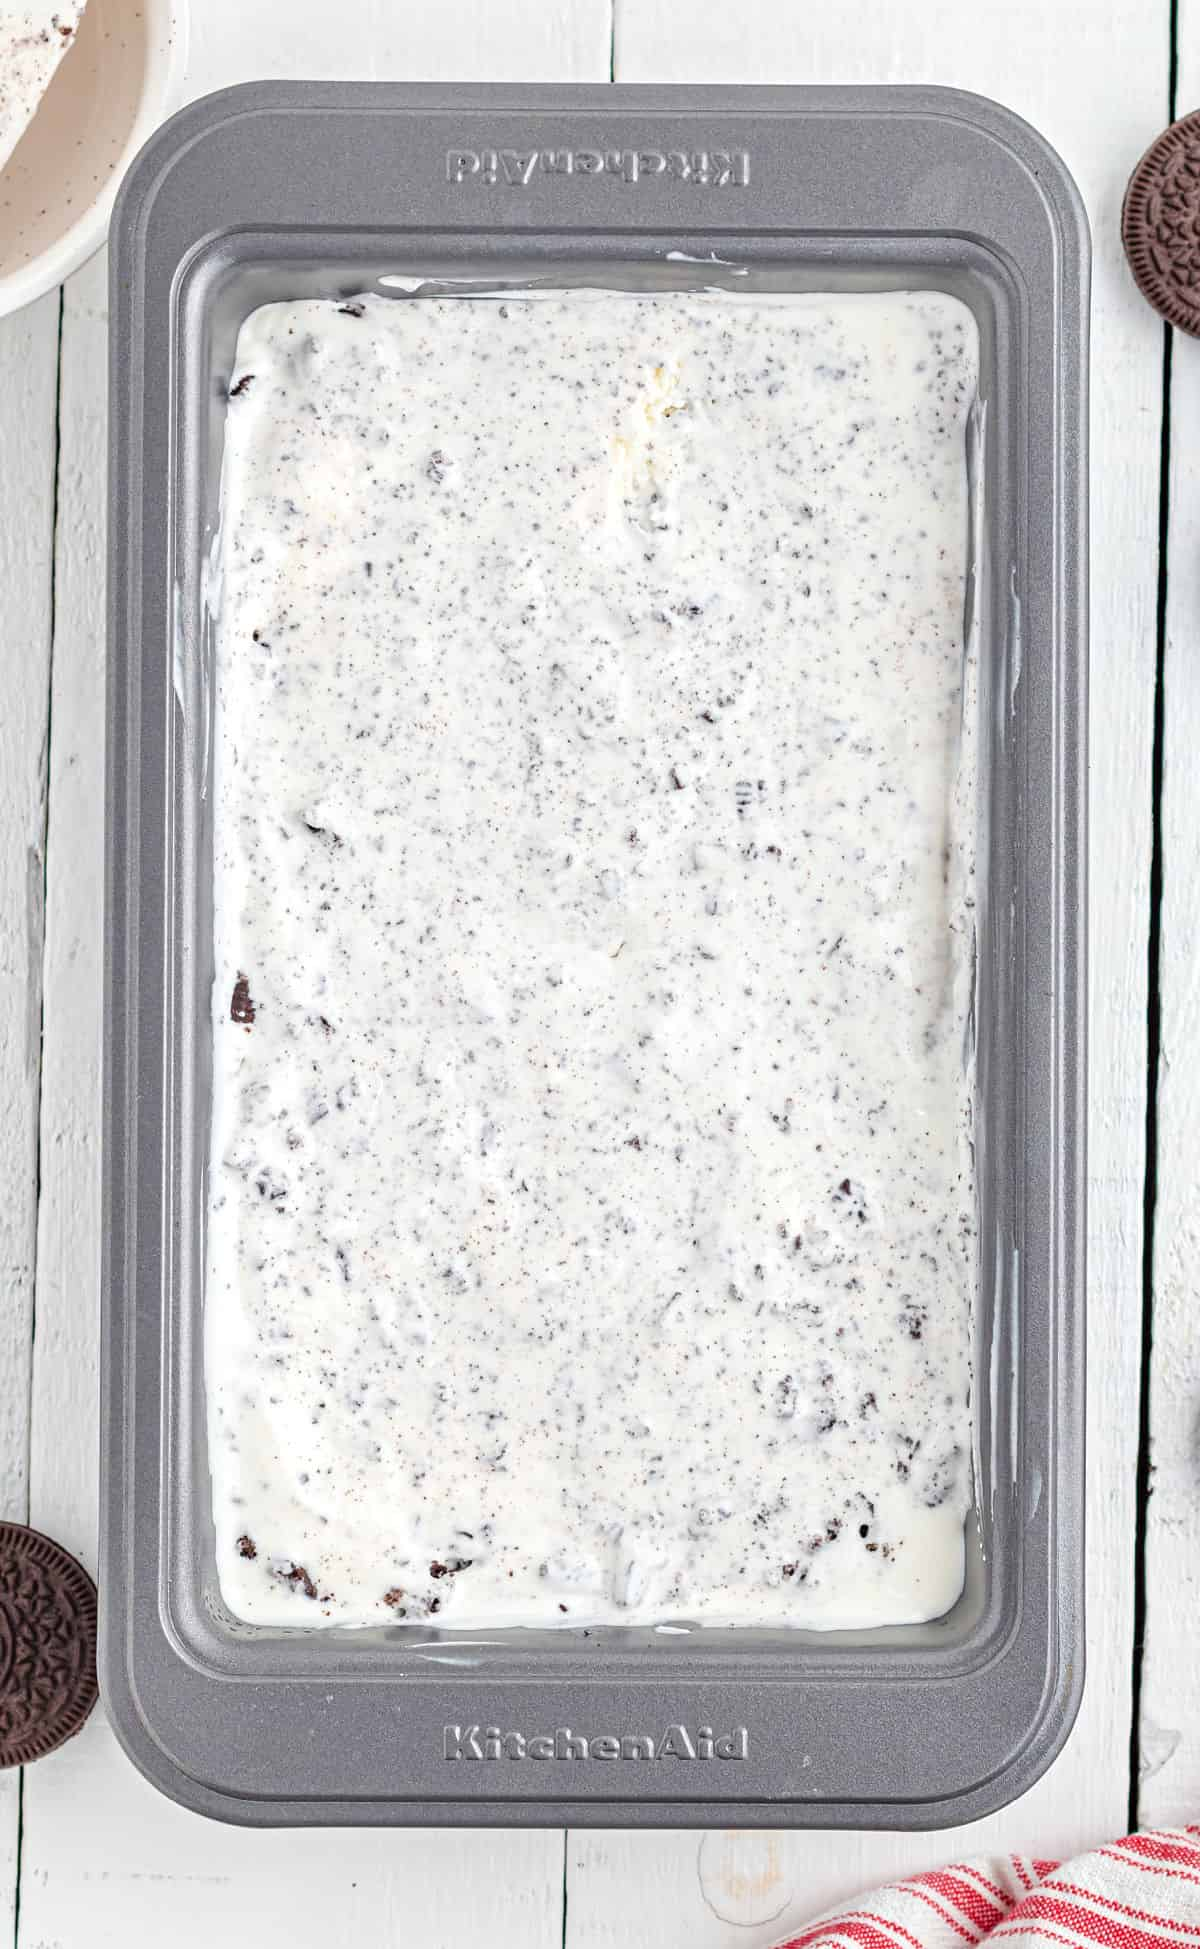 Metal loaf pan with cookies and cream ice cream.